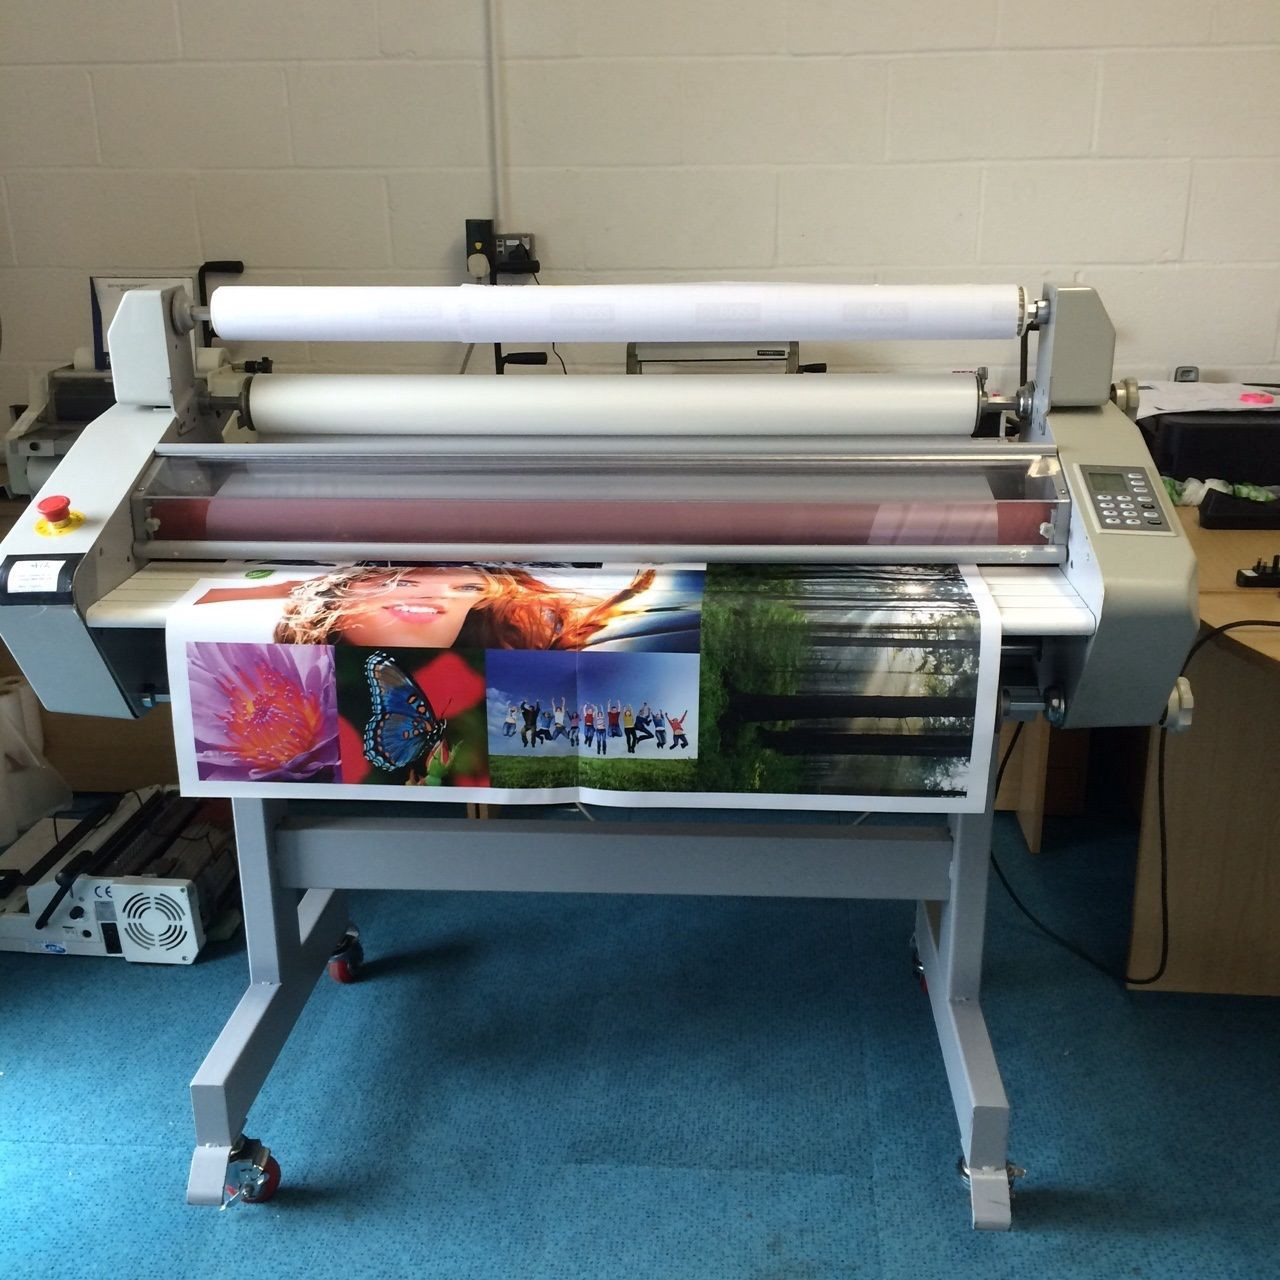 Where to Get Best Quality Roll Laminators From?